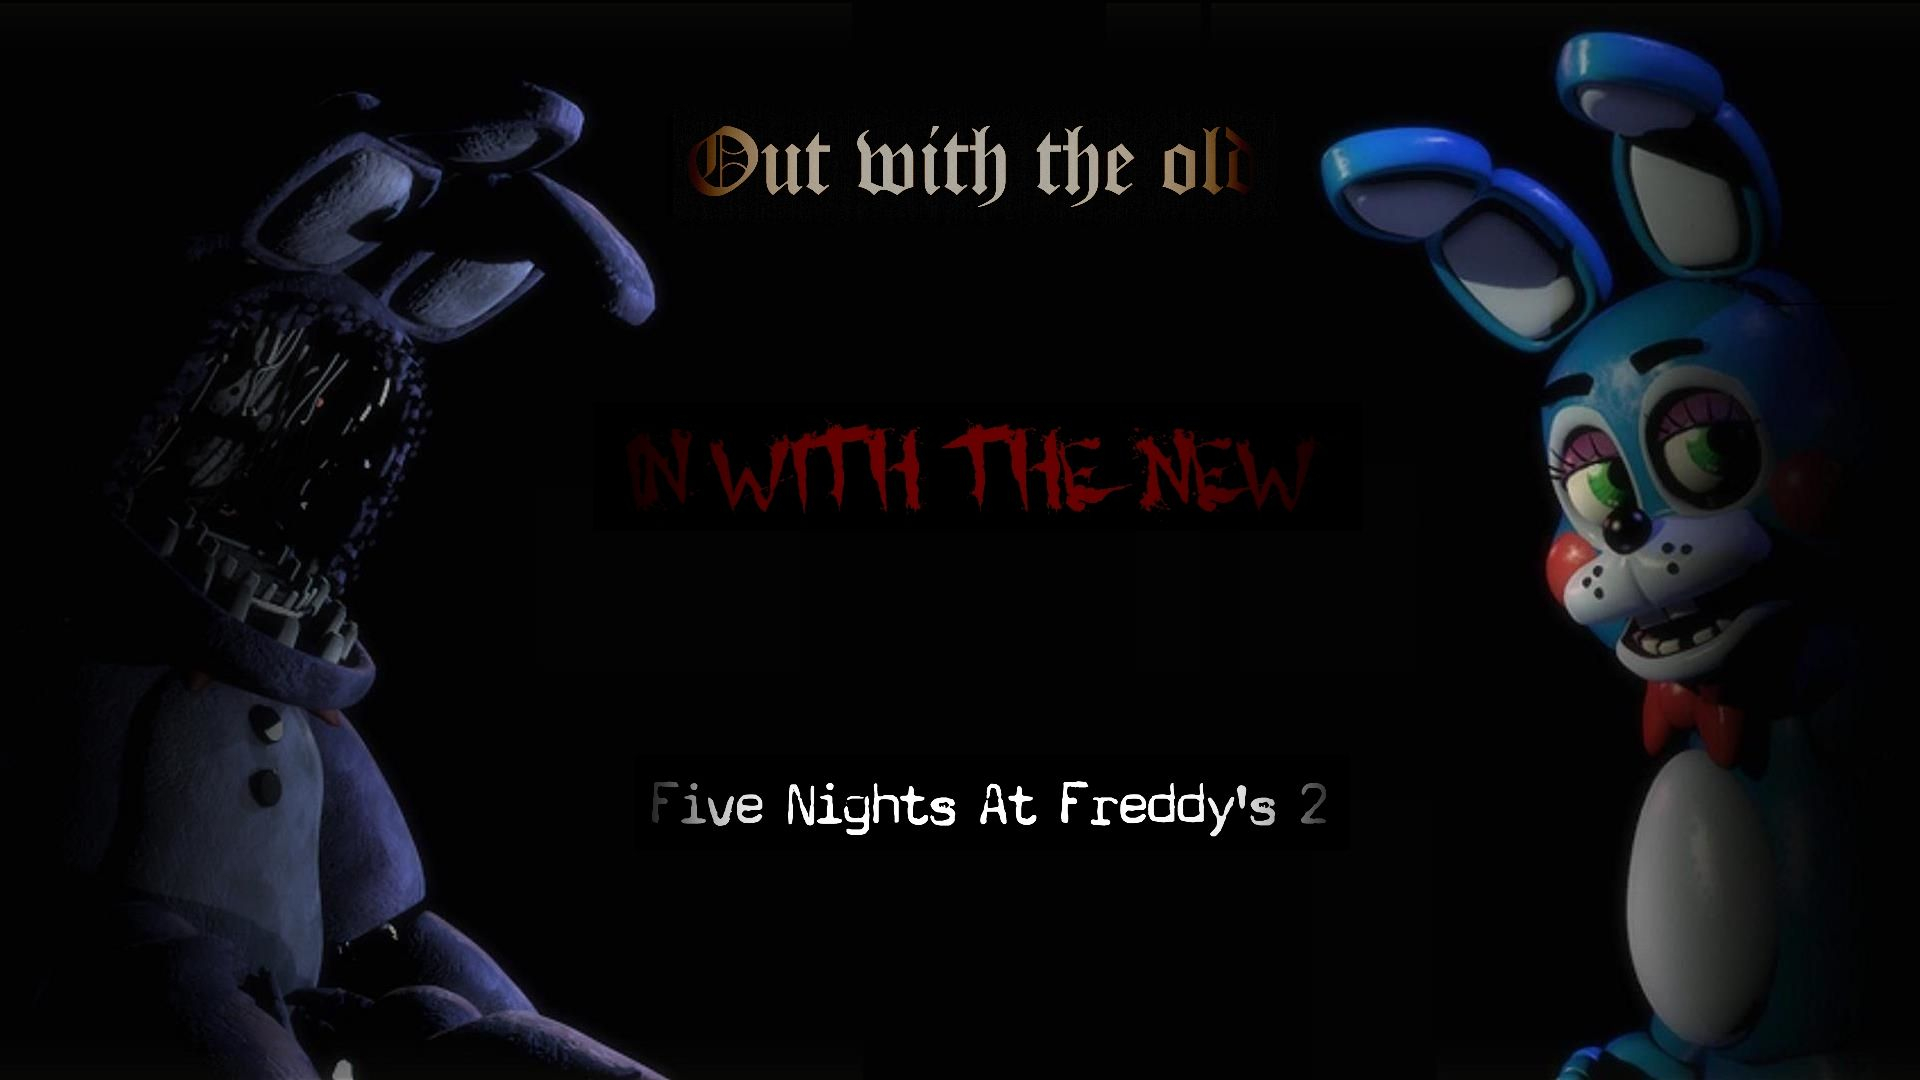 Five nights at freddy s 2 demo android - Five Nights At Freddy S 2 Apk Hacked Mod Incl Android App 1 07